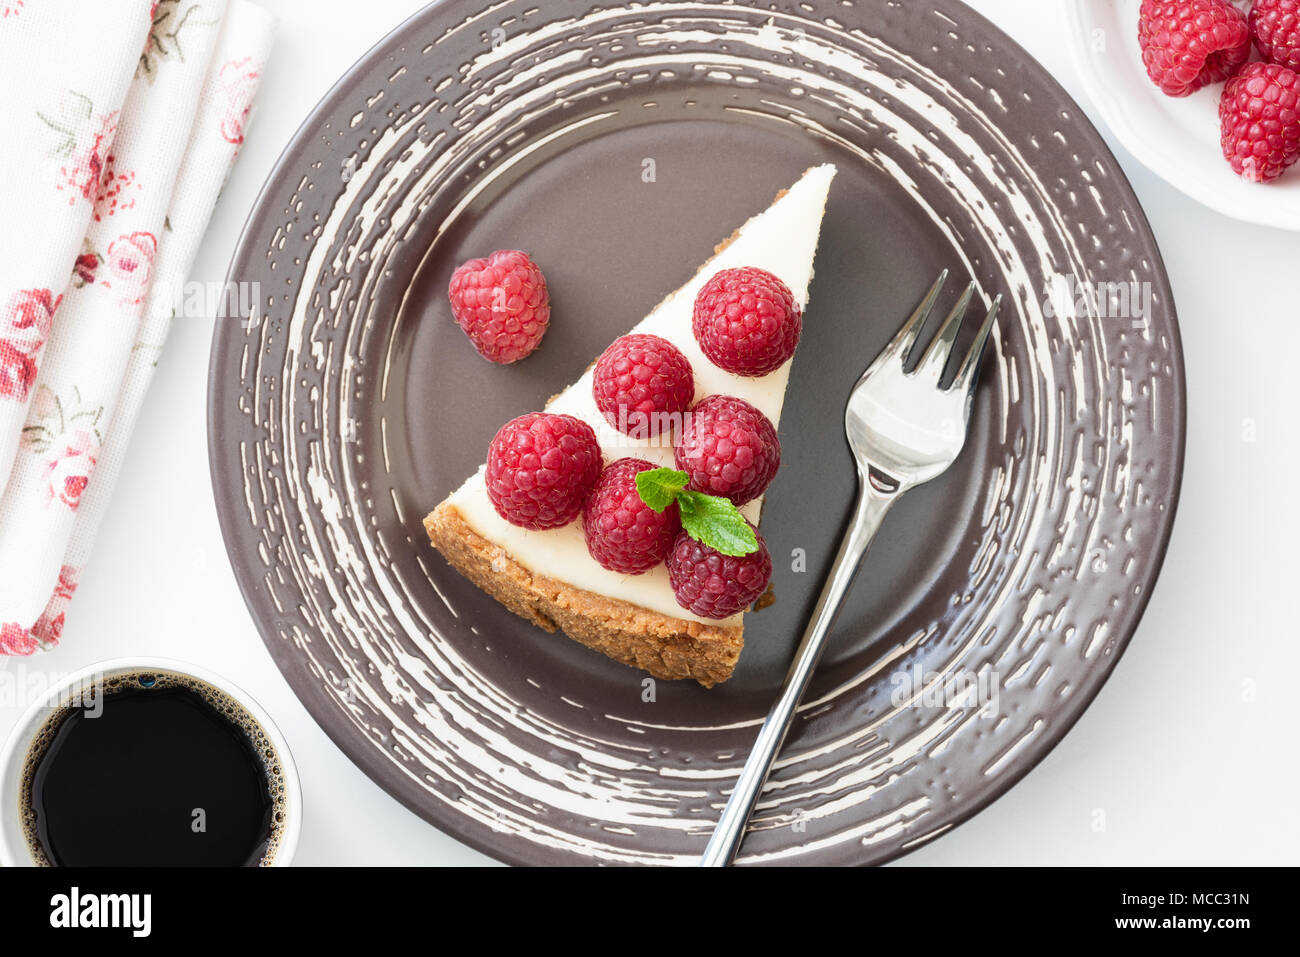 Top view of cheesecake slice with fresh raspberries on white background, selective focus - Stock Image